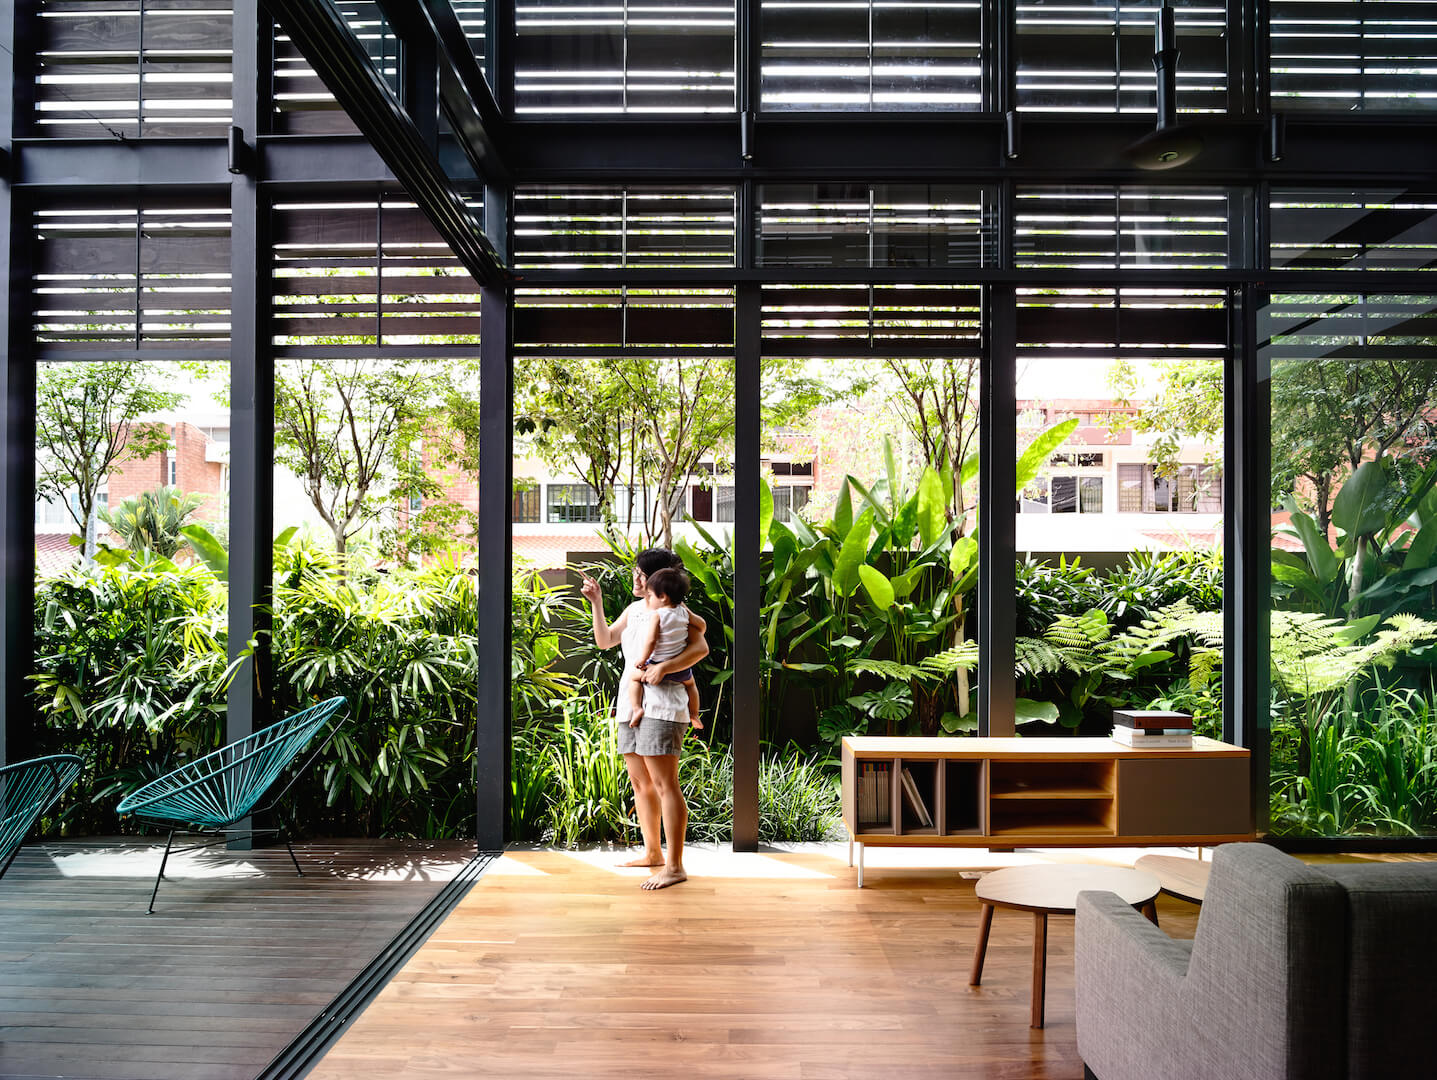 This shot of the living room and sunroom from the entrance to the space shows the landscaping just outside with massive, lush foliage that nearly blocks out the apartment complex across the street.